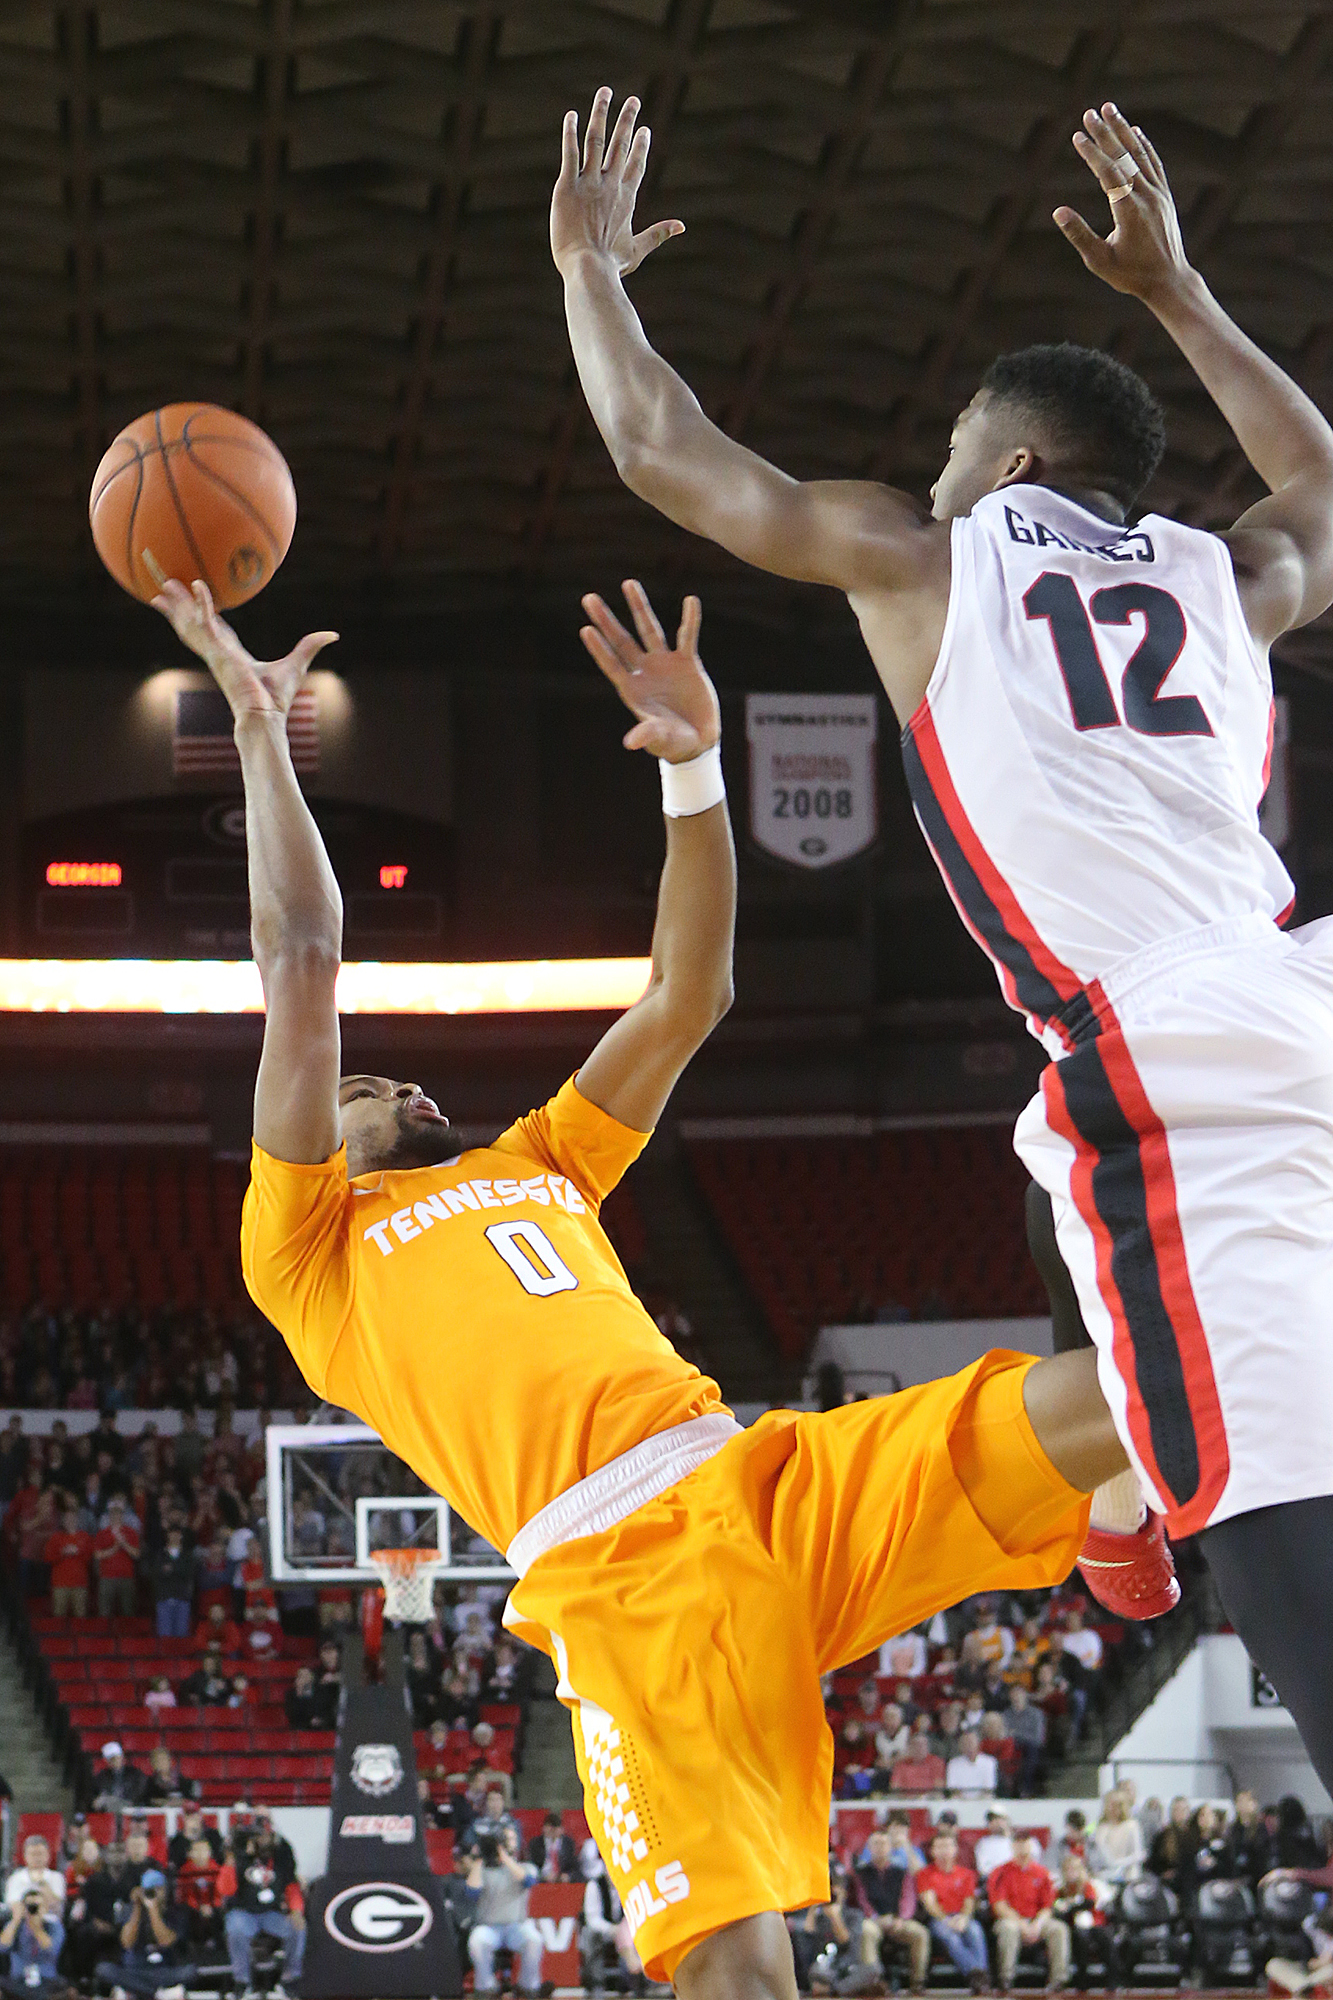 FILE - In this Jan. 13, 2016, file photo, Georgia guard Kenny Gaines blocks a shot by Tennessee guard Kevin Punter during an NCAA college basketball game, in Athens, Ga. Tennessee's lack of size has the Volunteers relying on an unusual lineup lately. The